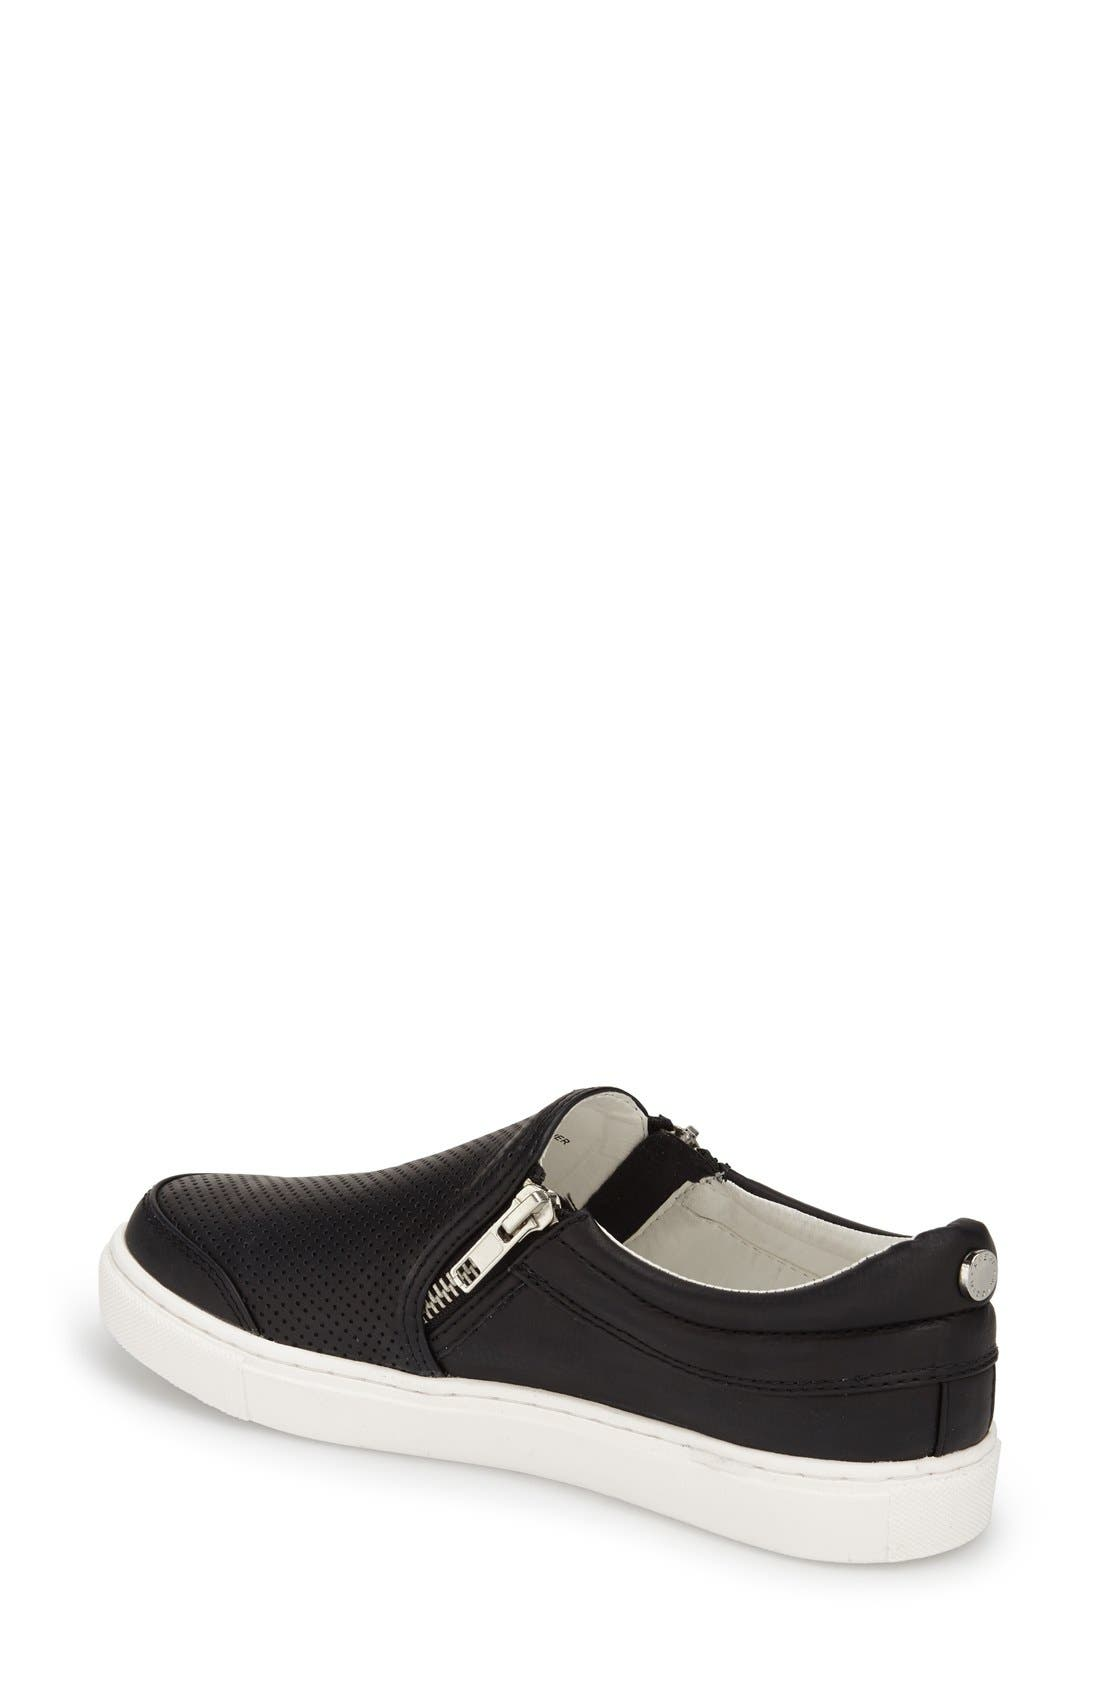 Alternate Image 2  - Steve Madden 'Ellias' Slip-On Sneaker (Women)